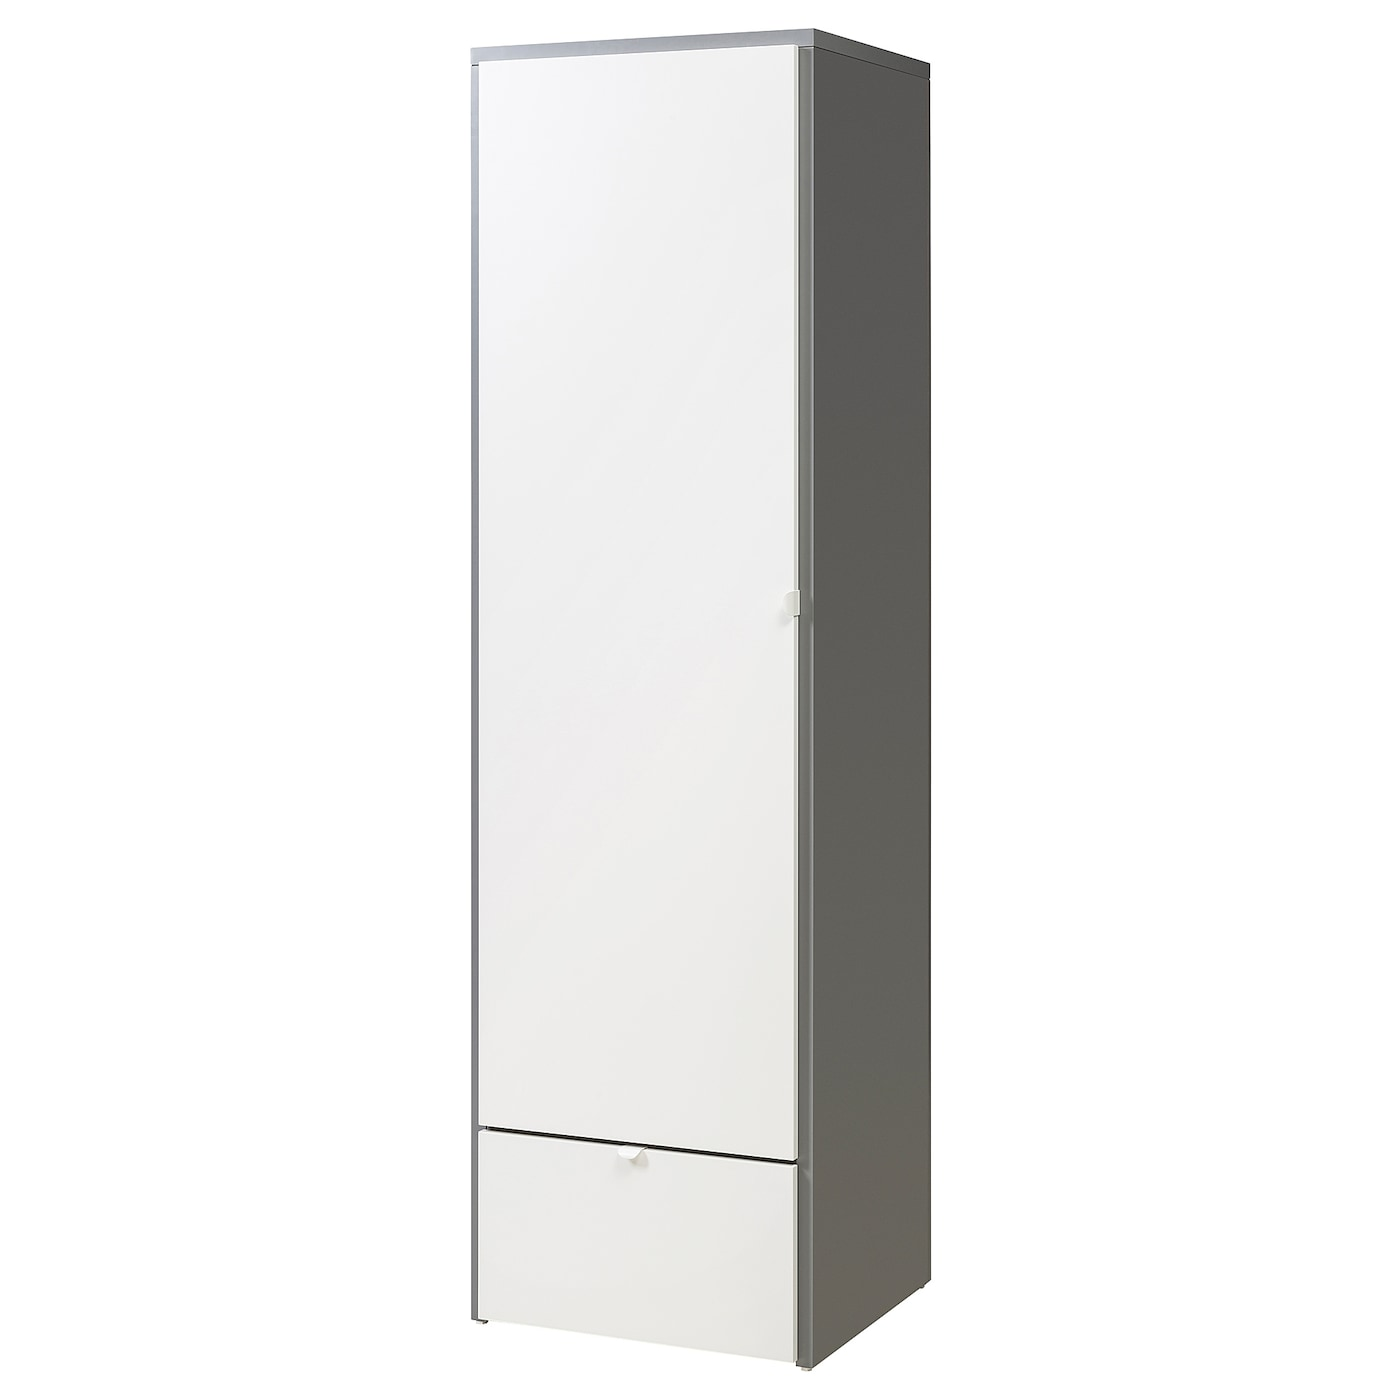 Visthus wardrobe grey white 63x59x216 cm ikea for Miroir 70 x 70